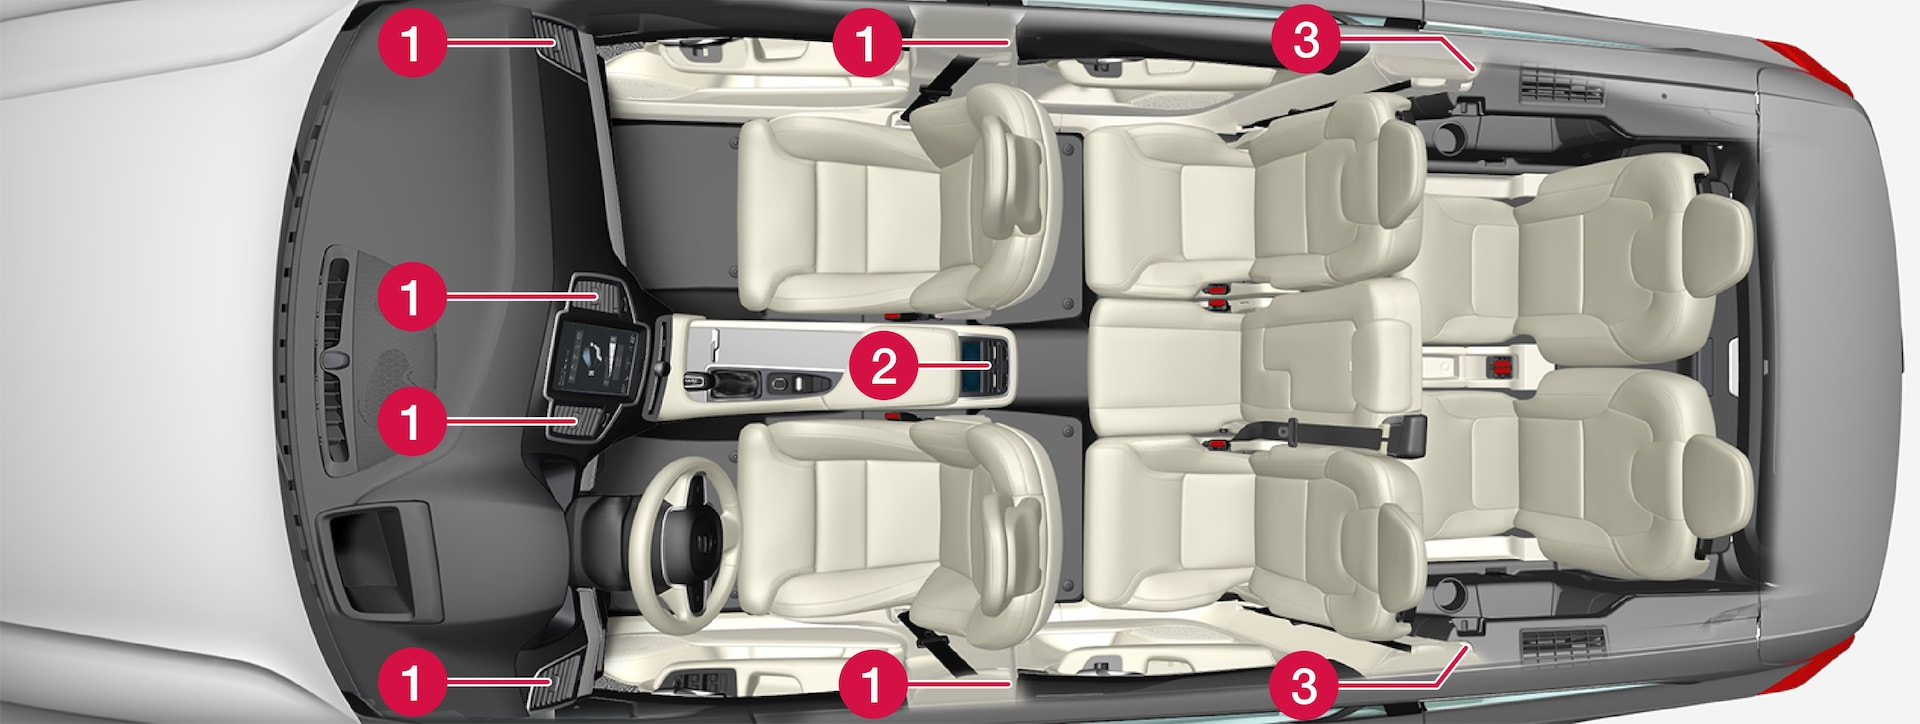 Location of adjustable air vents in the passenger compartment.